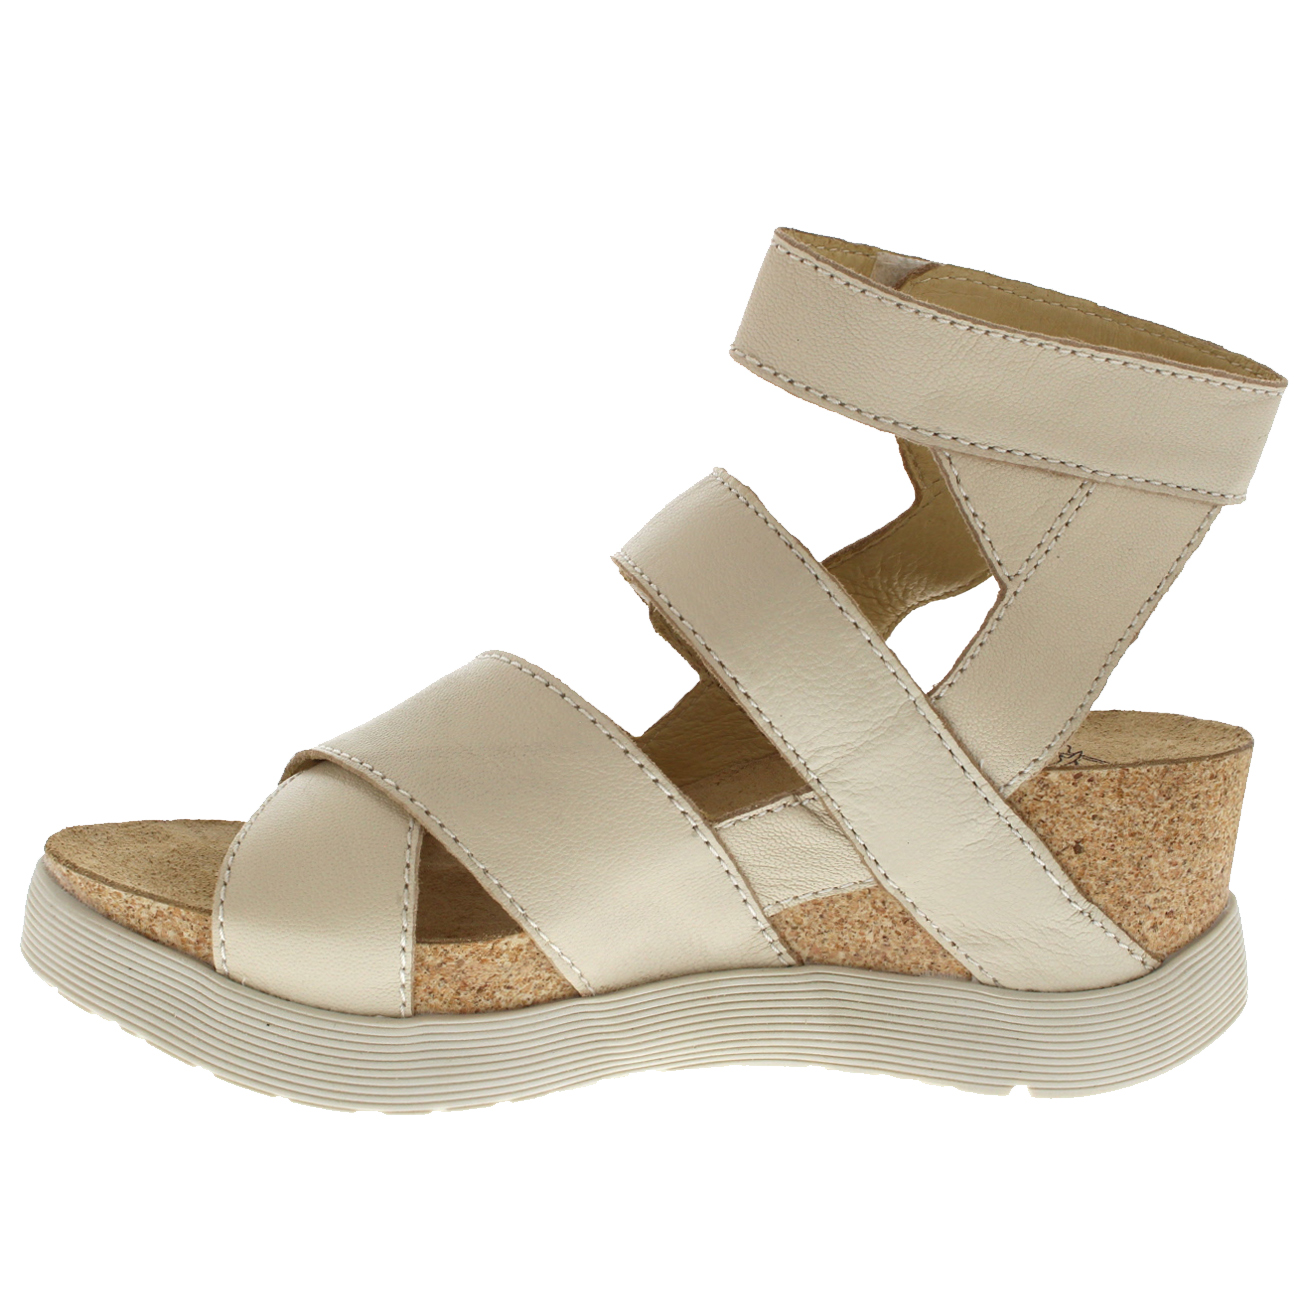 Womens-Fly-London-Wedge-Leather-Open-Toe-Summer-Cut-Out-Sandals-US-5-12 thumbnail 15